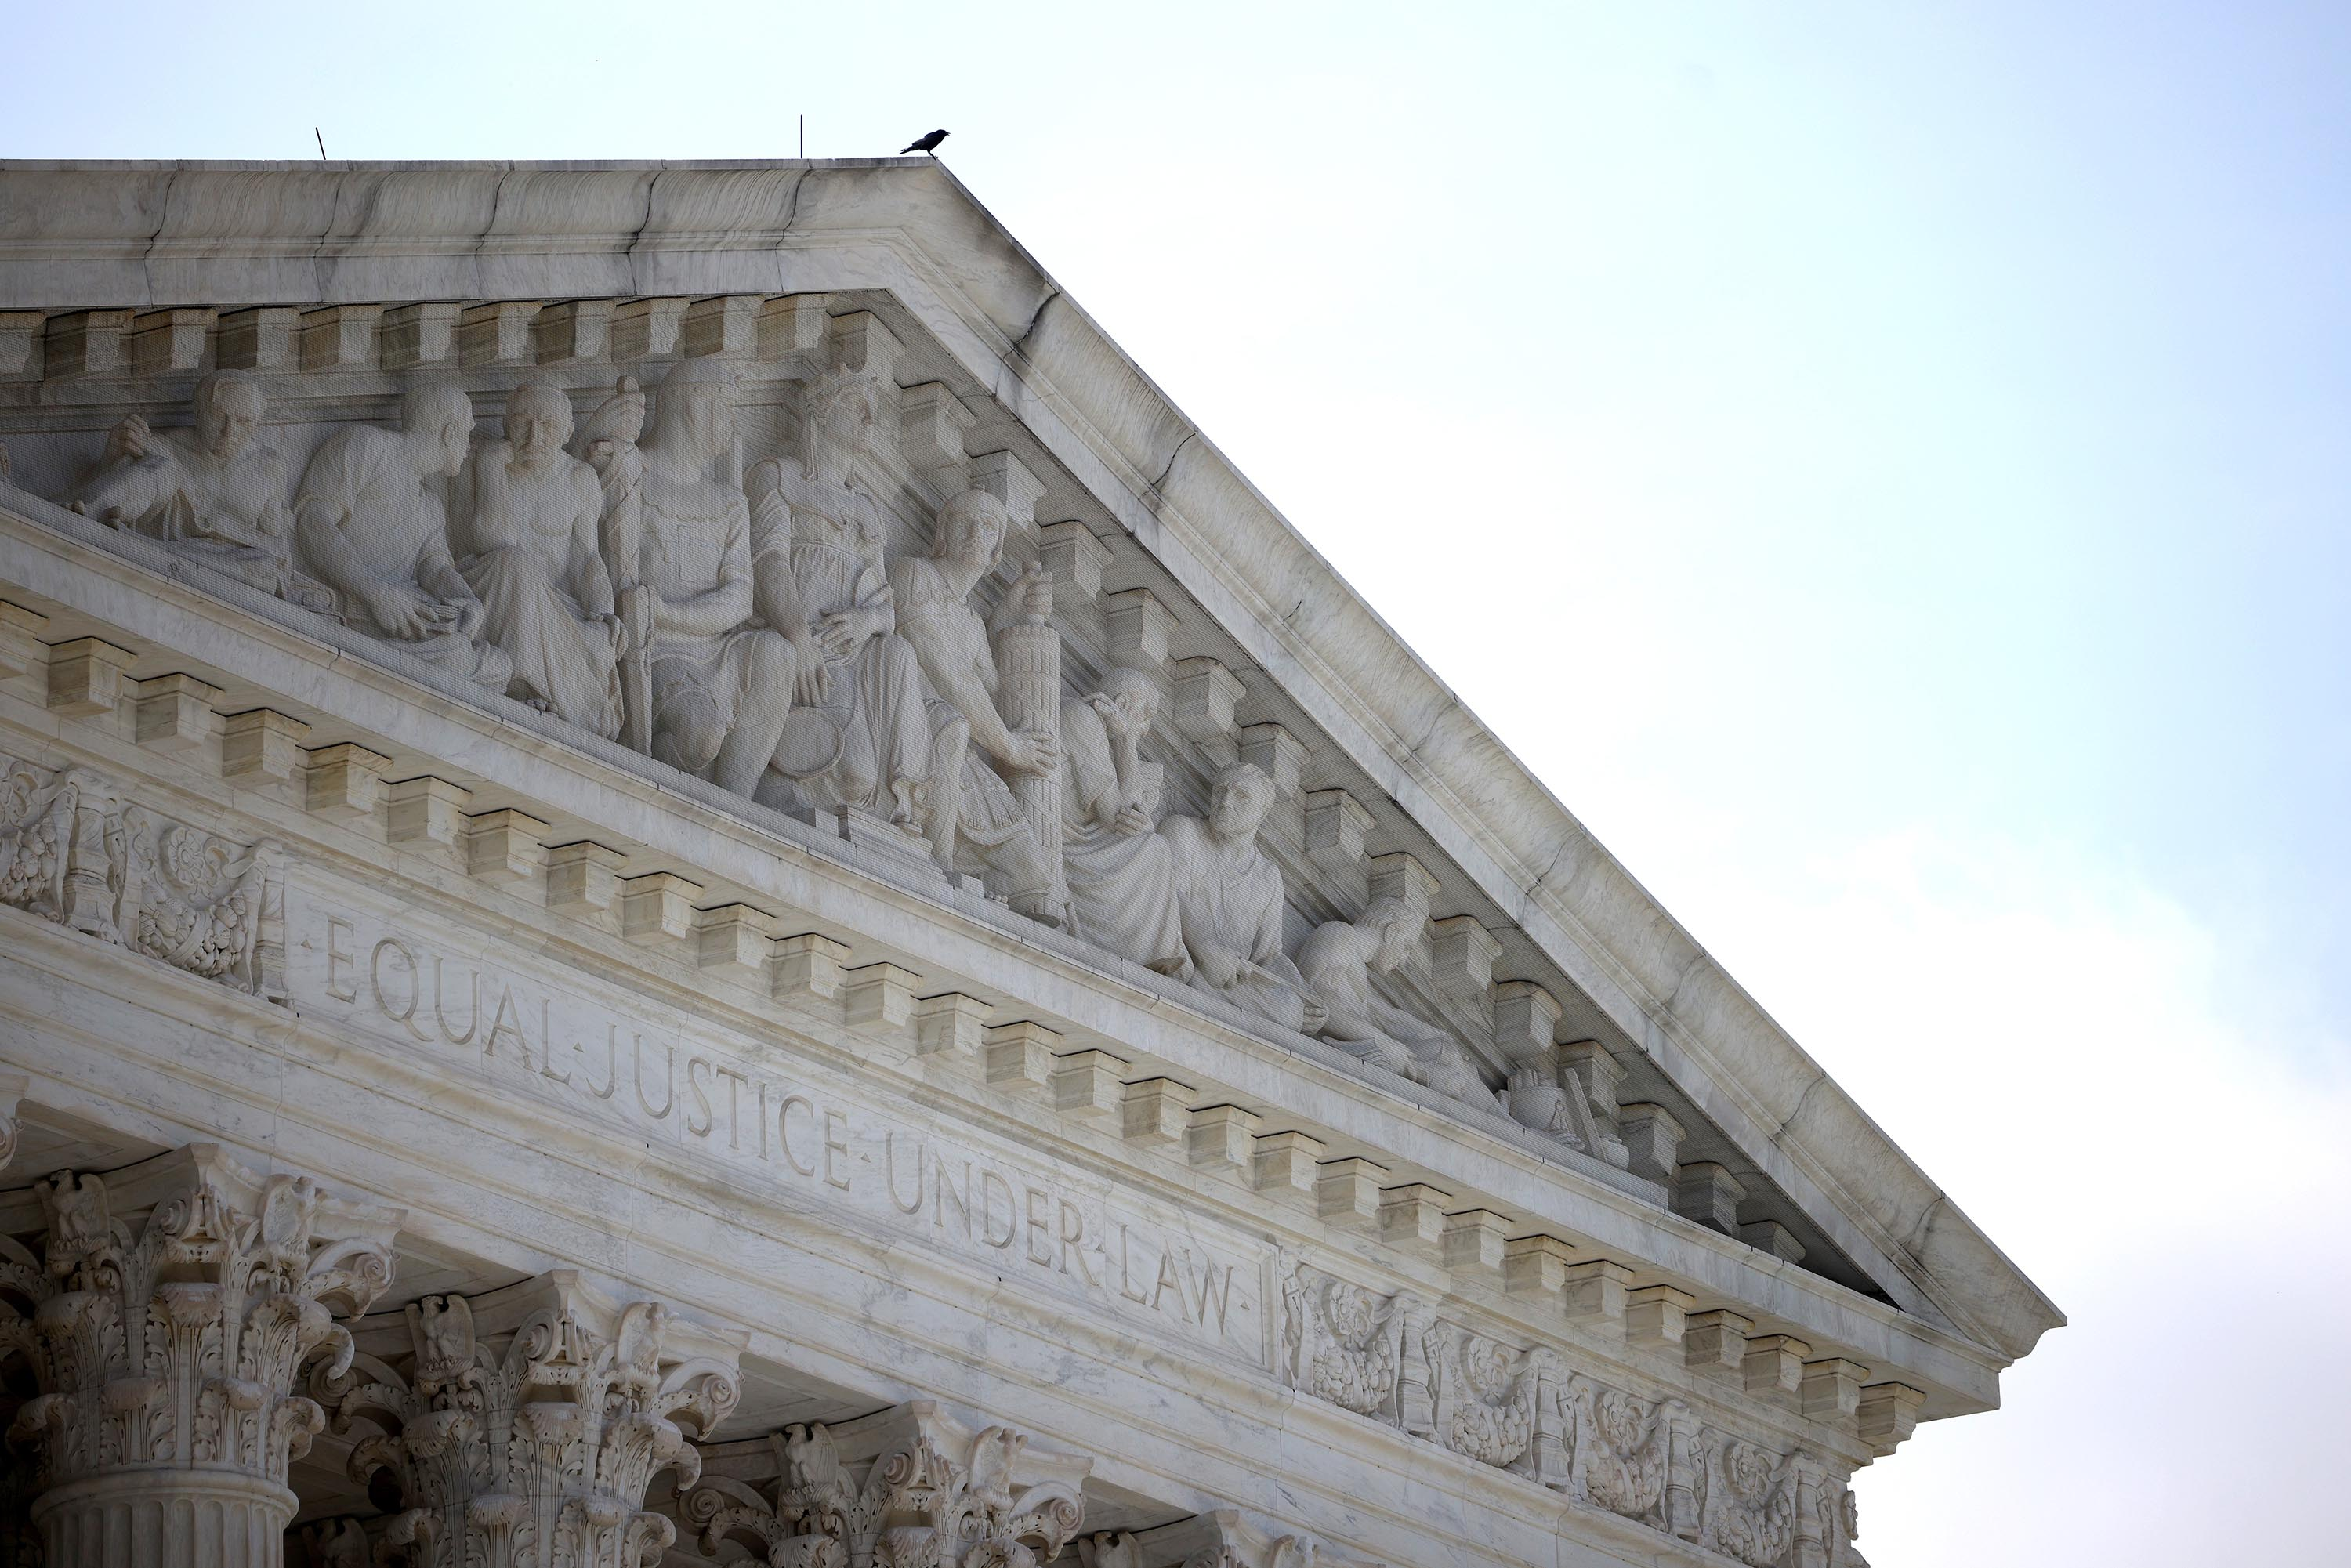 Supreme Court revives case about man's death in police custody